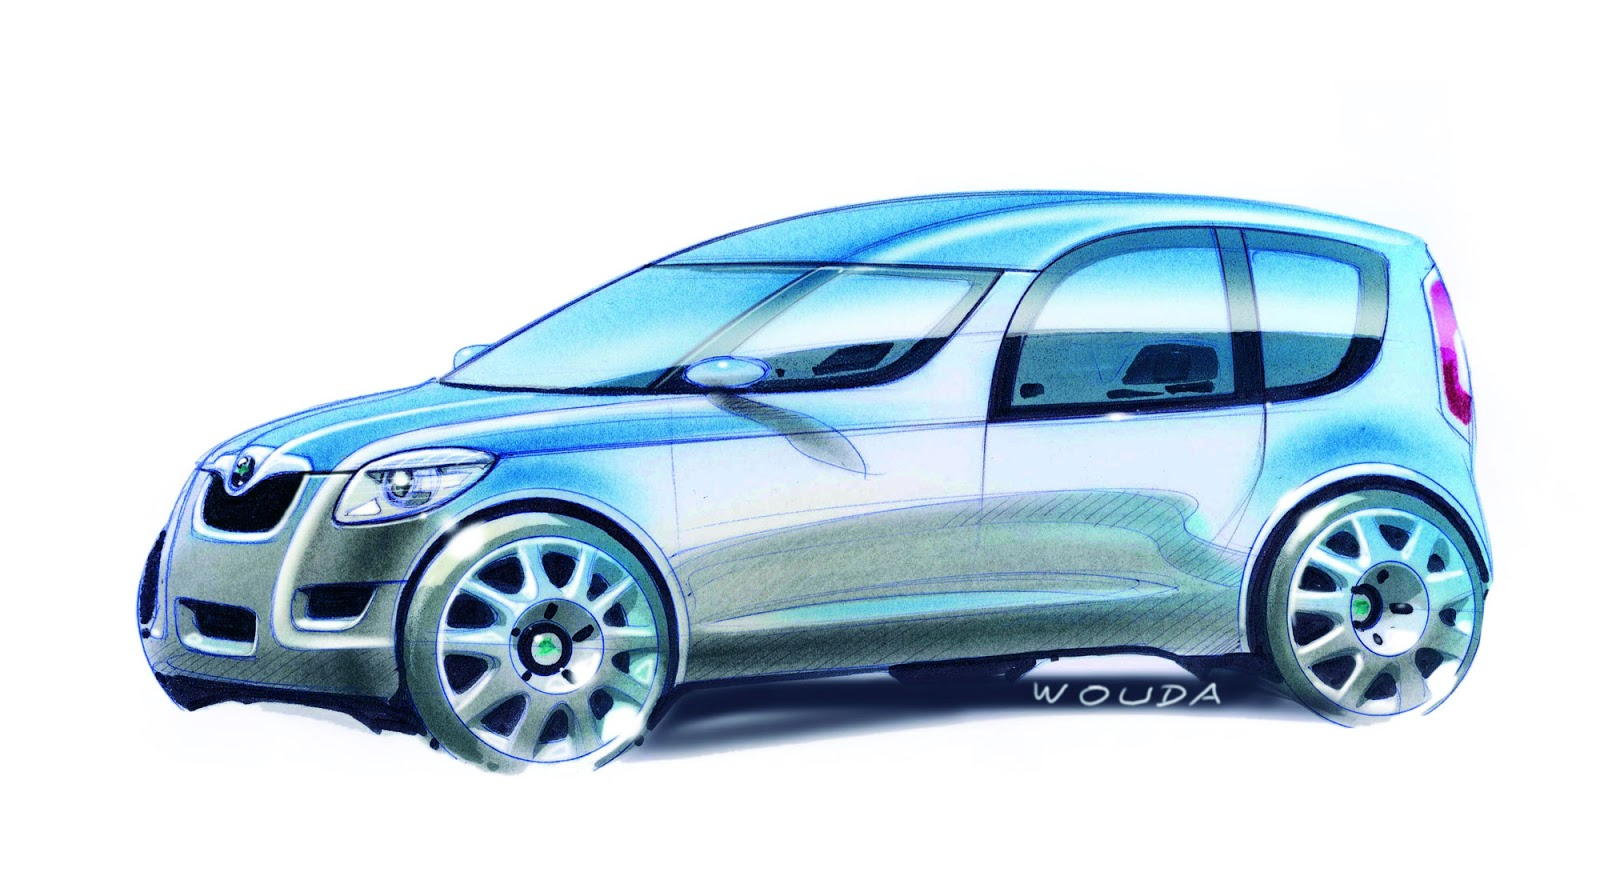 Skoda Roomster sketch by Peter Wouda - final theme, side view